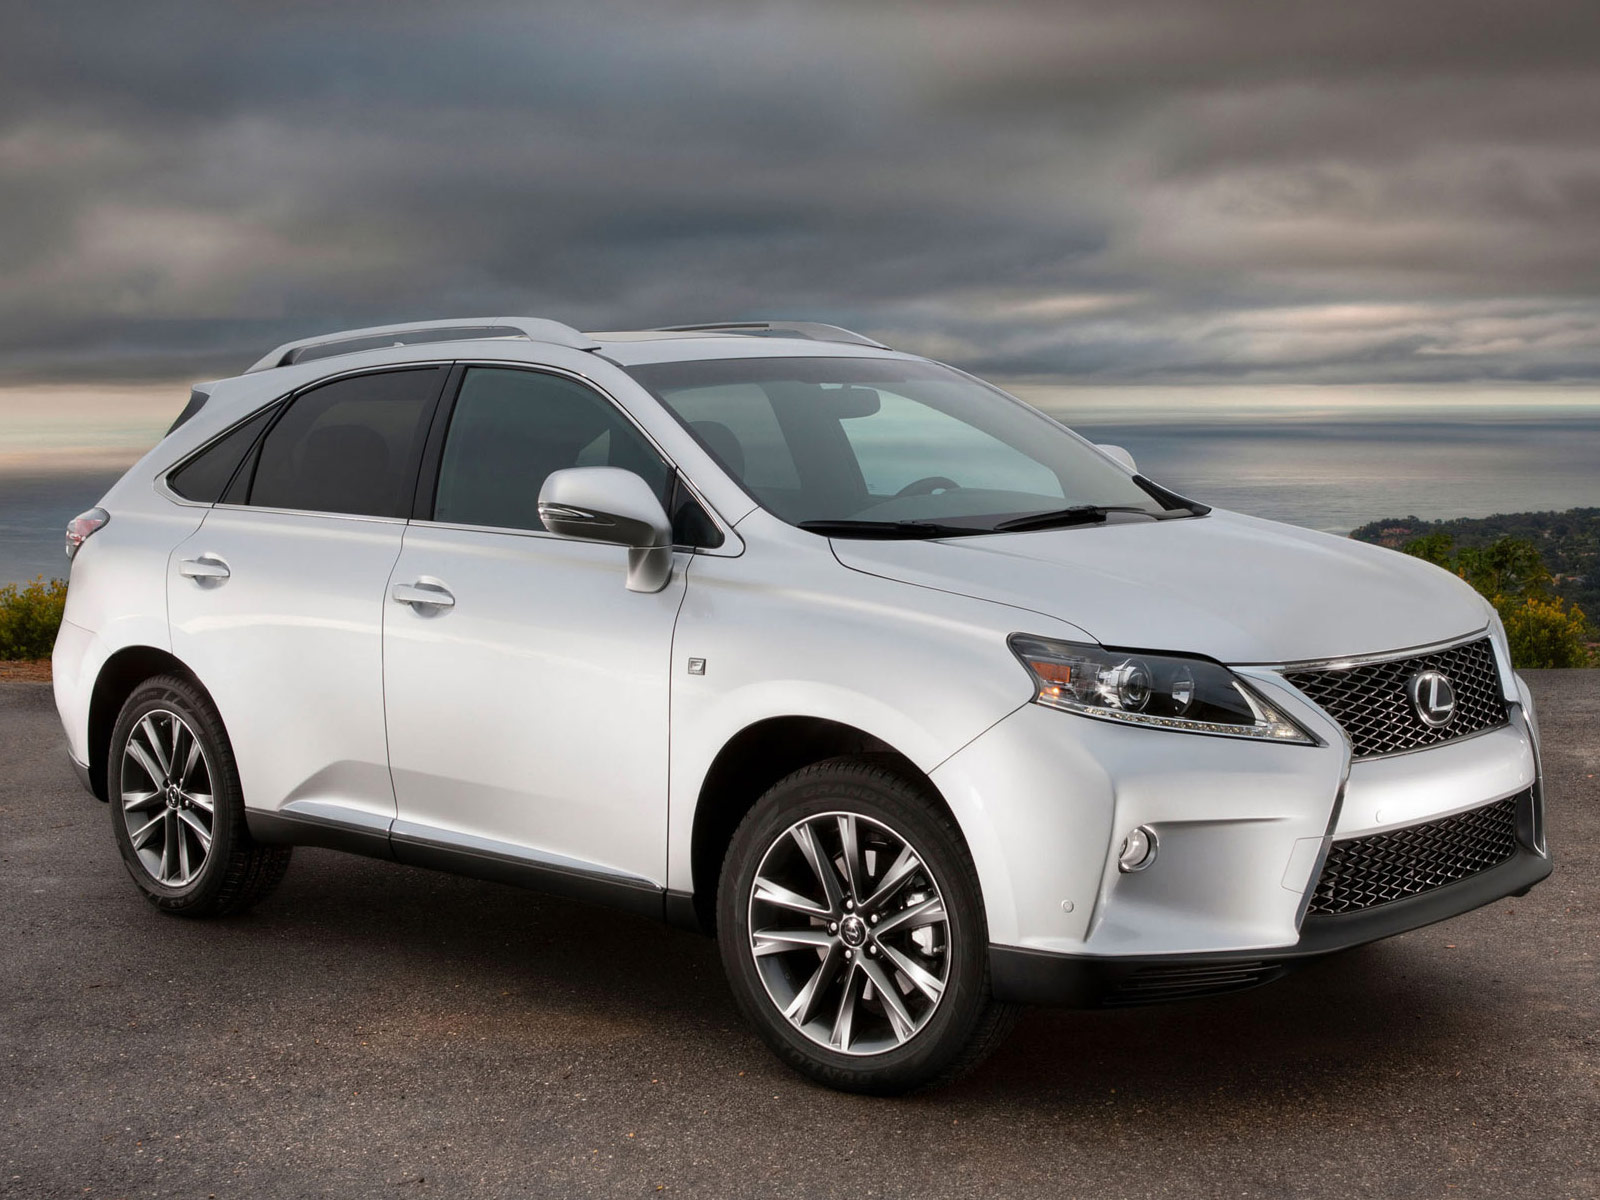 2013 lexus rx350f sport car accident lawyers. Black Bedroom Furniture Sets. Home Design Ideas